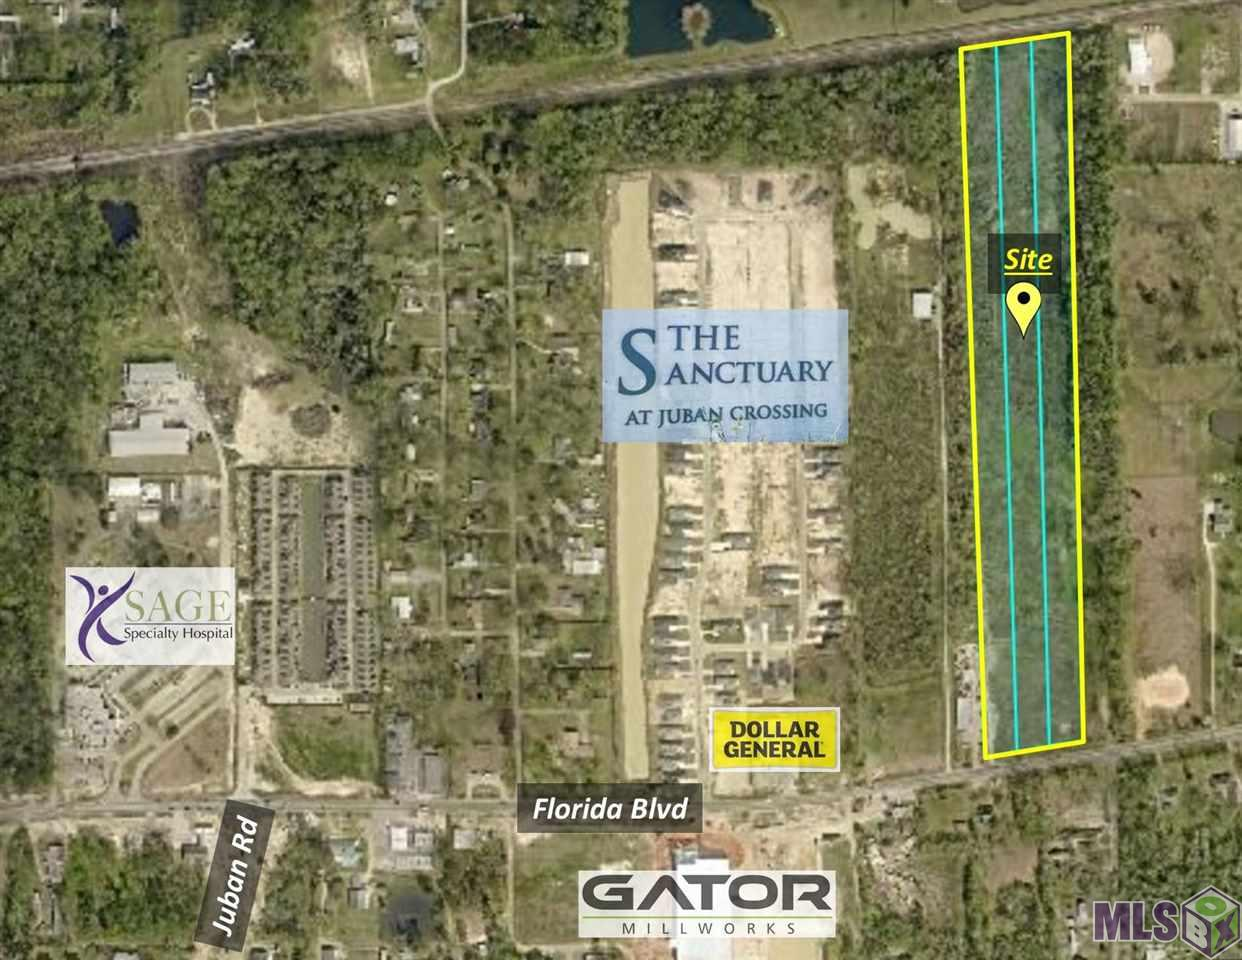 This property is composed of 17.9 acres near Juban Road in Denham Springs. 326' of frontage on Florida Blvd, It's 2313' deep for a total square footage of approx.  783,768. This property is less than half mile from Juban Road and less than 1.5 miles from Juban Crossing / I-12. Great potential for many possibilities in the rapidly expanding Denham Springs community. Flood zone AE / No Wetlands. 16.90 acres @ $3.00 sqft and frontage 1 acre @ $7.00 sqft.